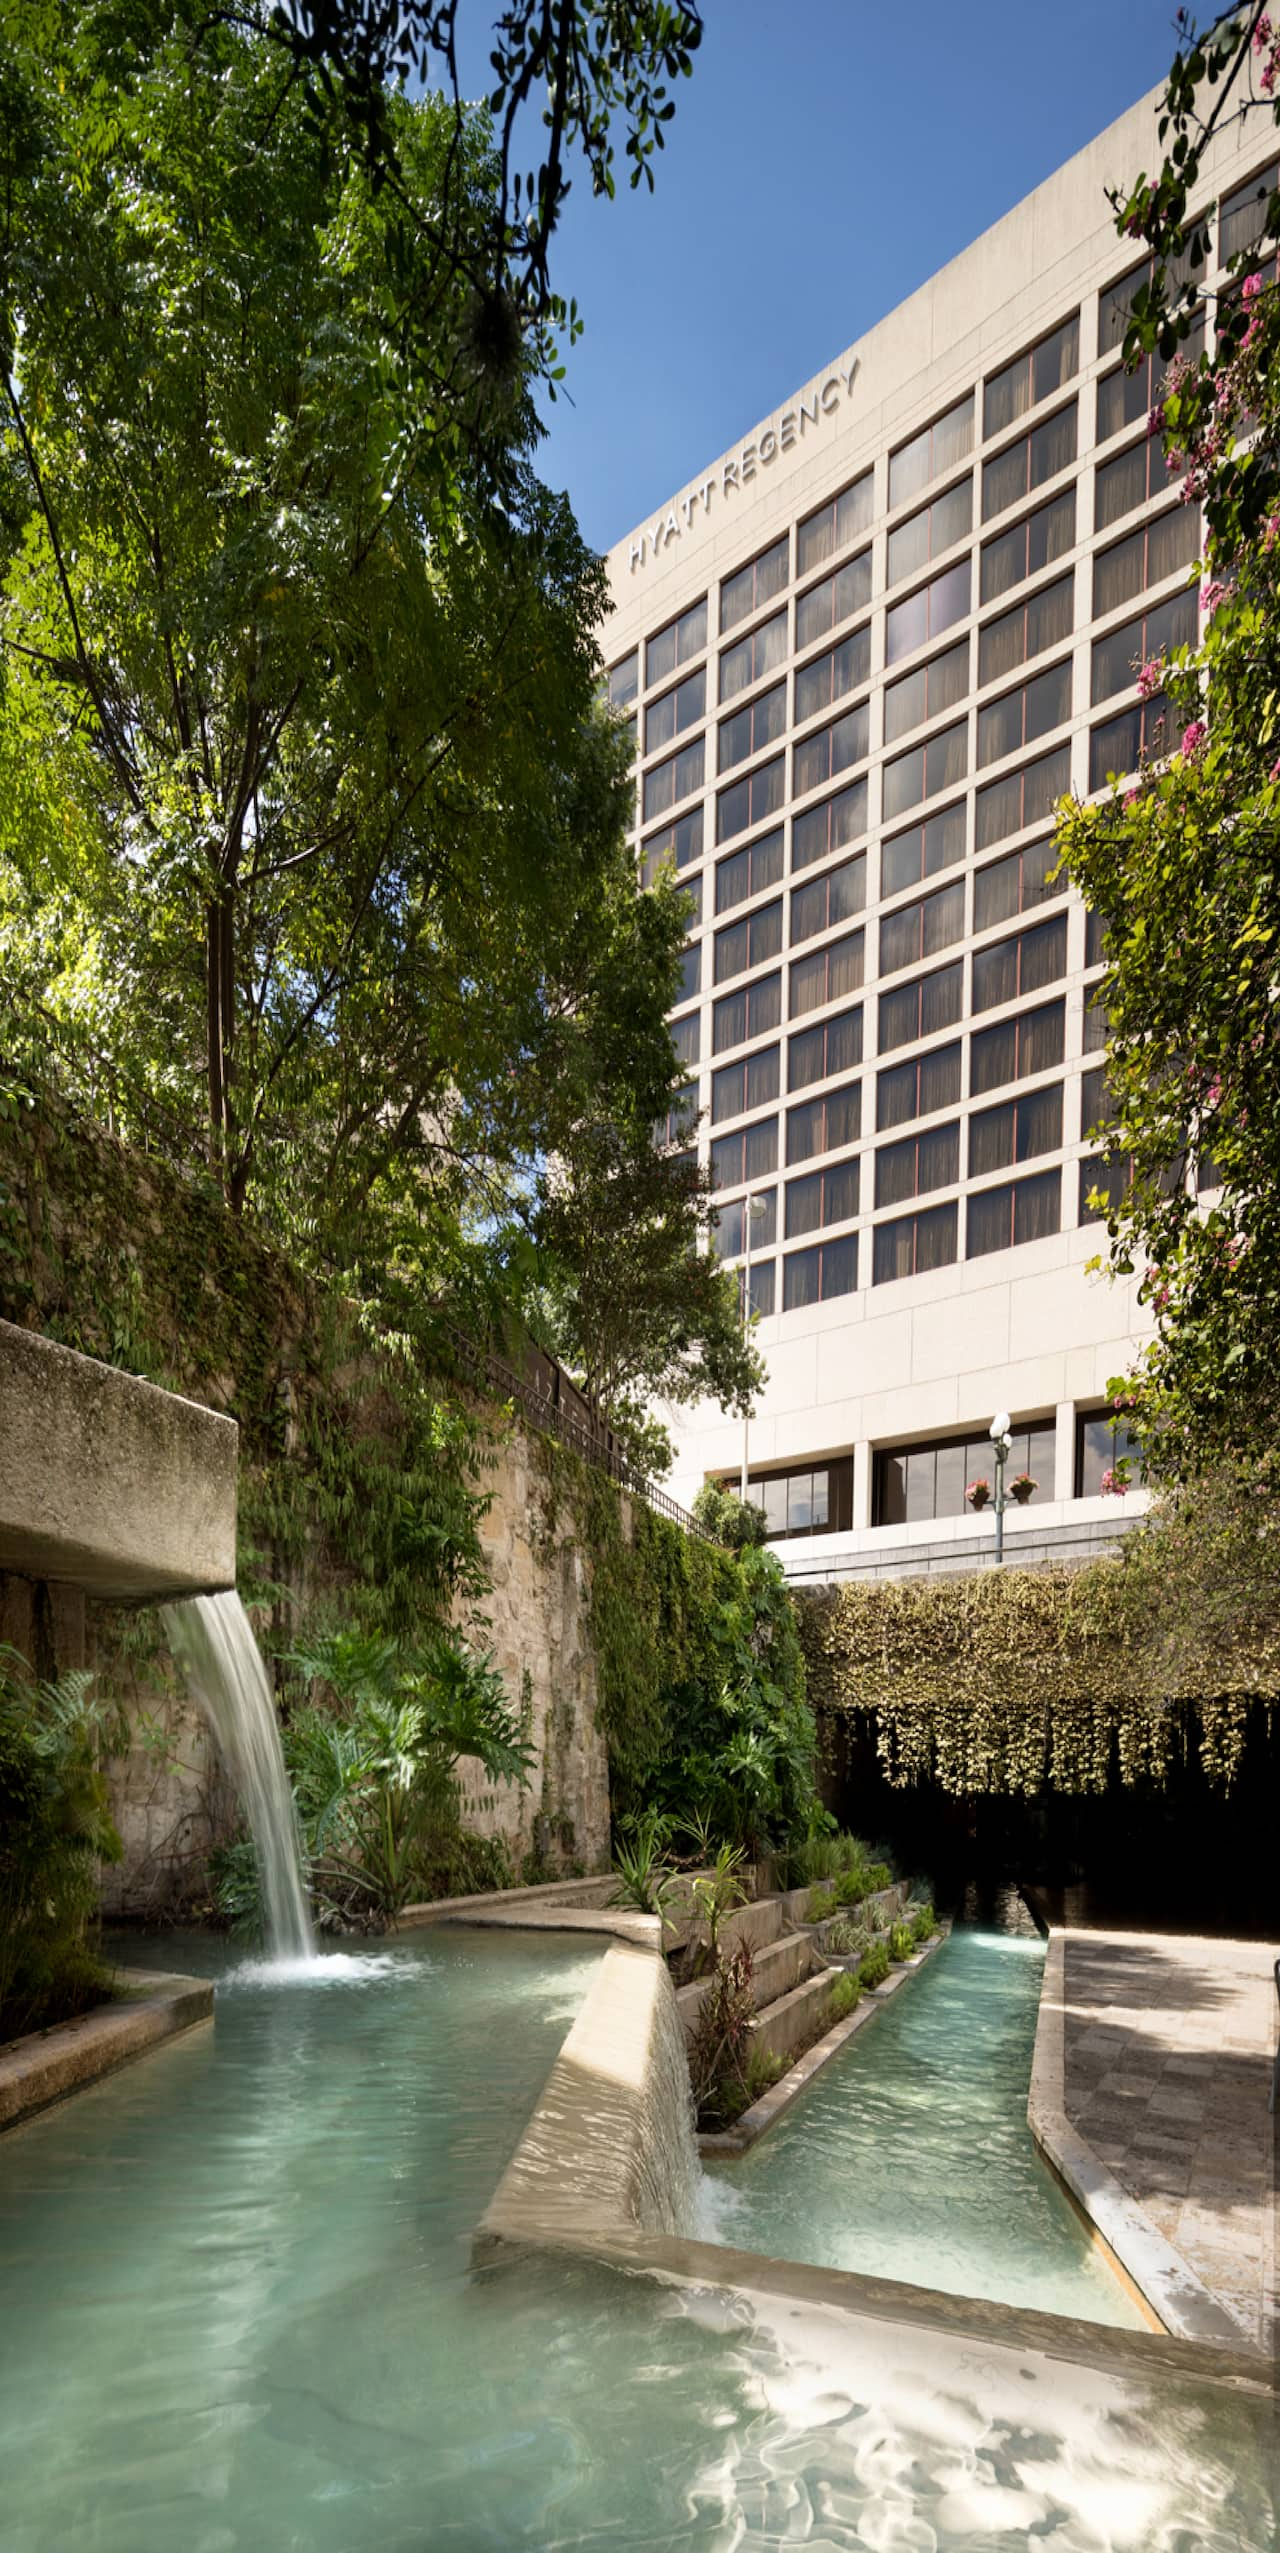 Exterior view of the Hyatt Regency San Antonio Riverwalk